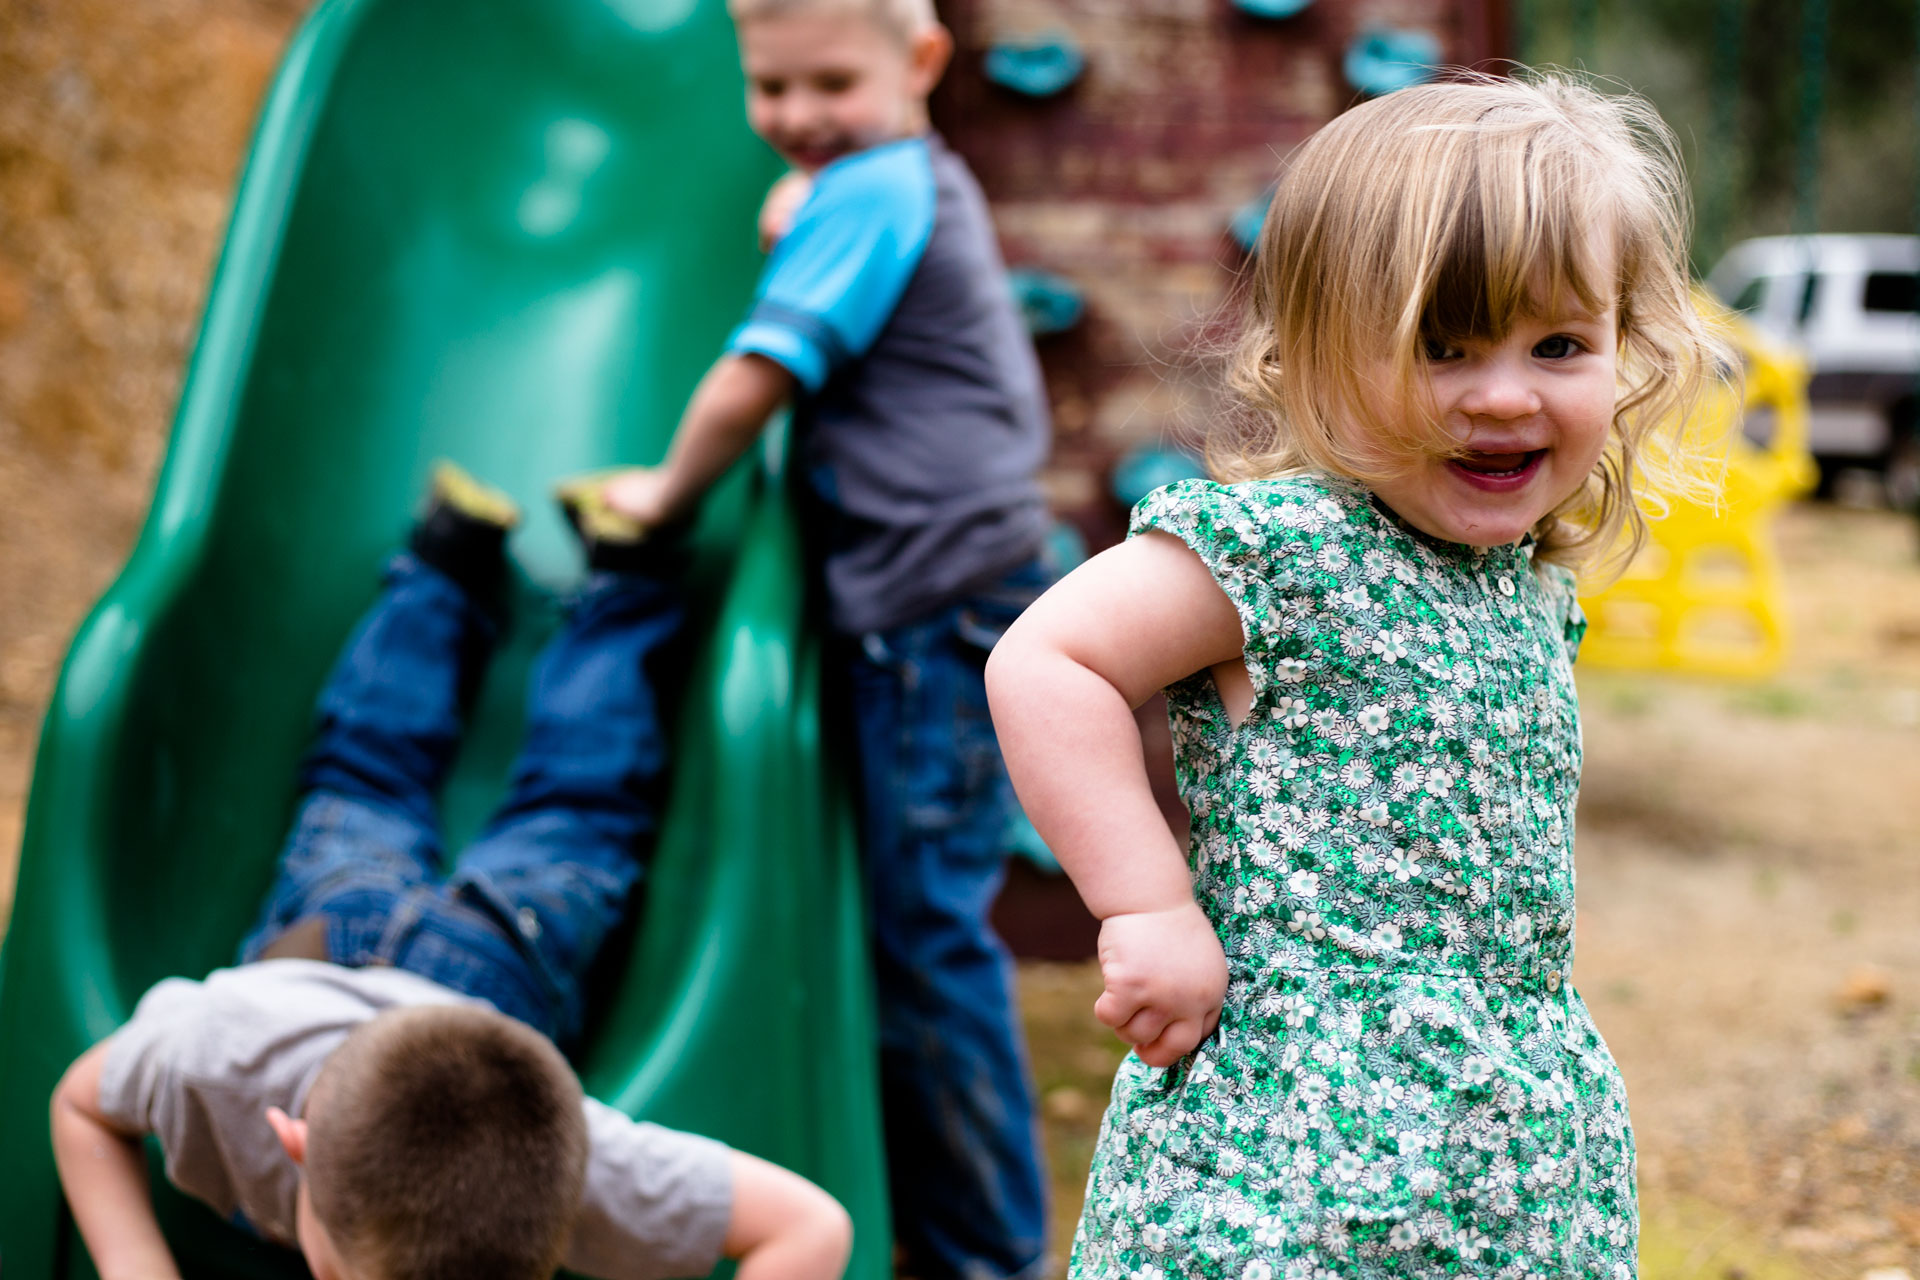 Little sister just coming off the slide while brothers are close behind laughing and smiling